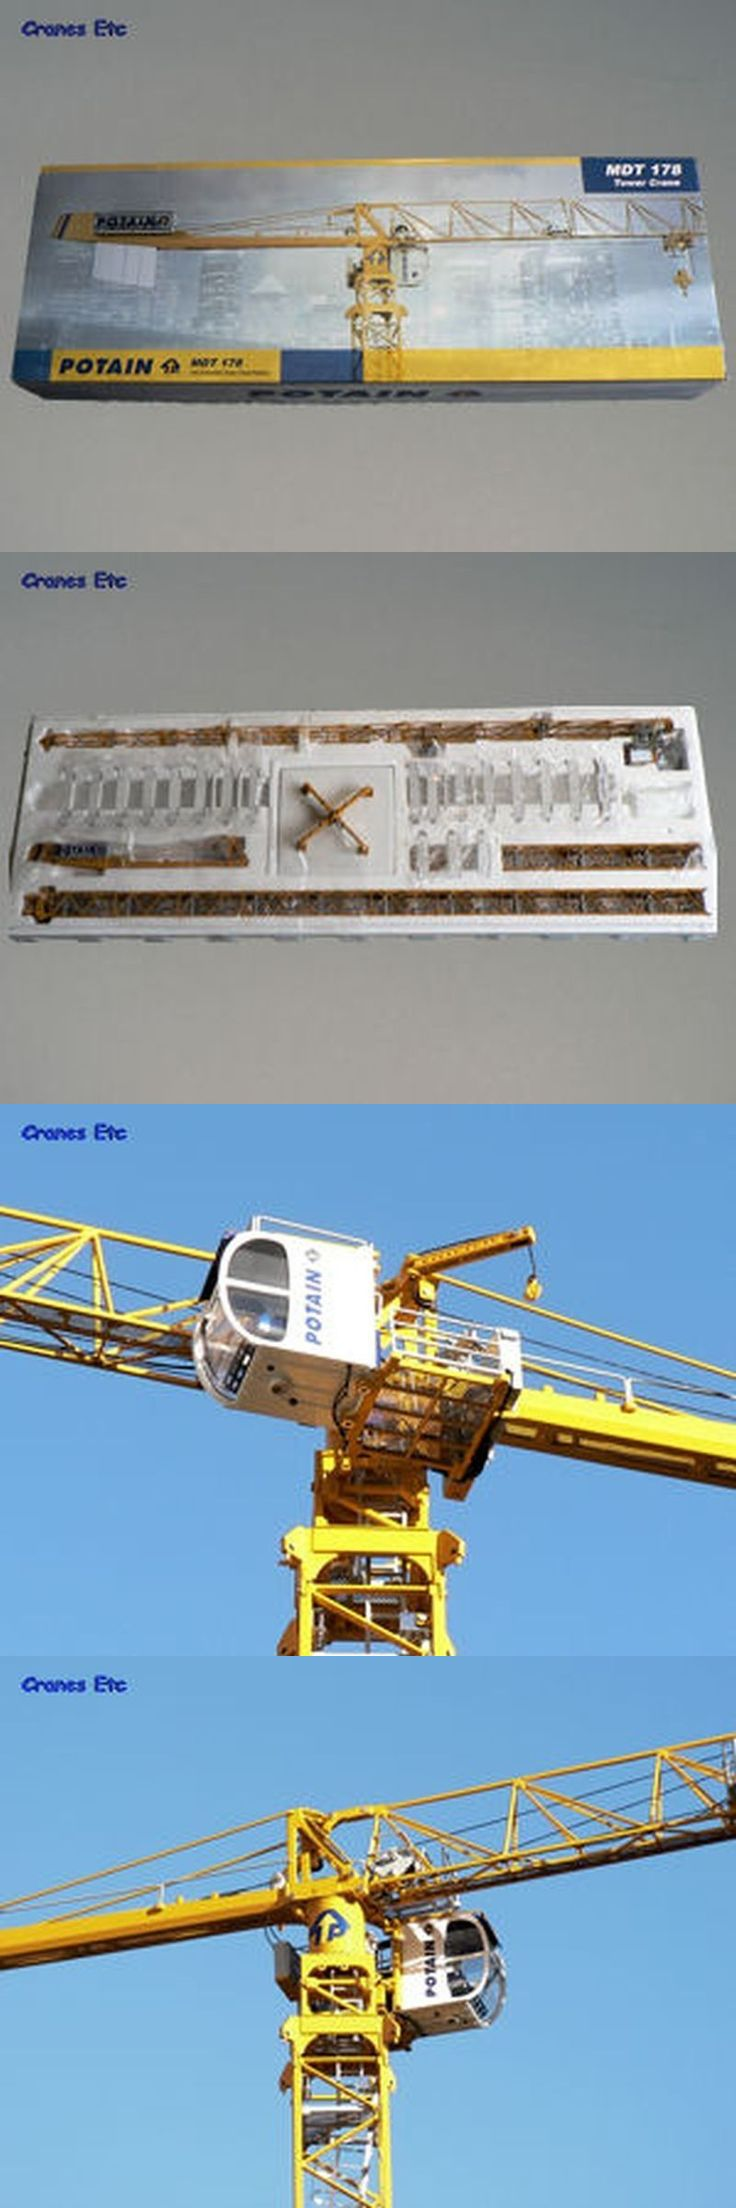 Contemporary Manufacture 152934: Potain Mdt 178 Tower Crane Twh Collectible Model # 047 Mib ** -> BUY IT NOW ONLY: $549.99 on eBay!